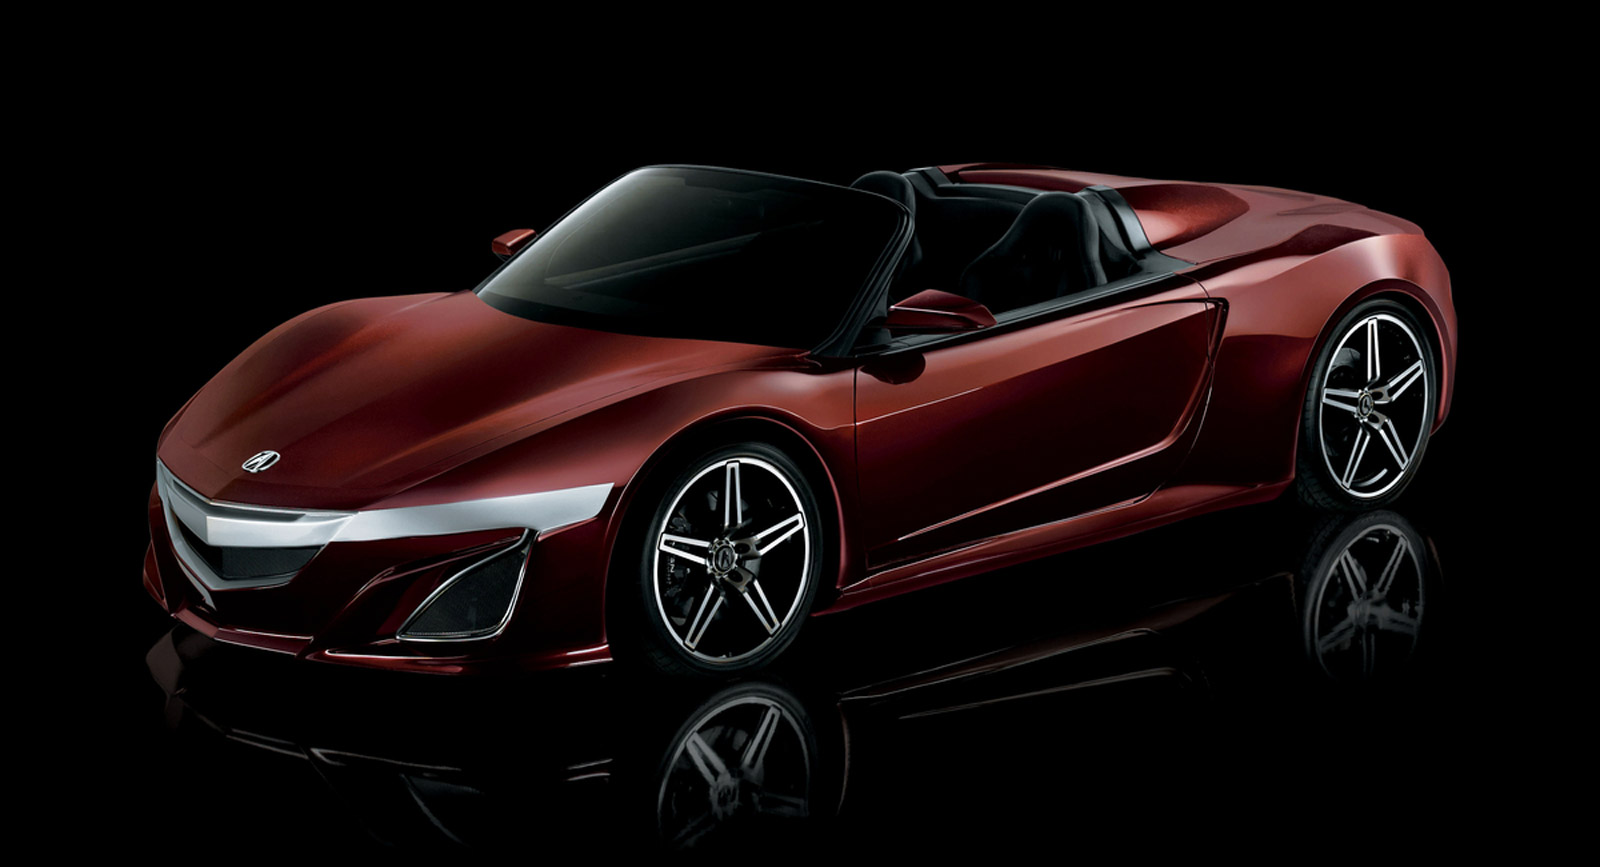 Better late than never: Acura NSX Type R, convertible reportedly coming in 2021